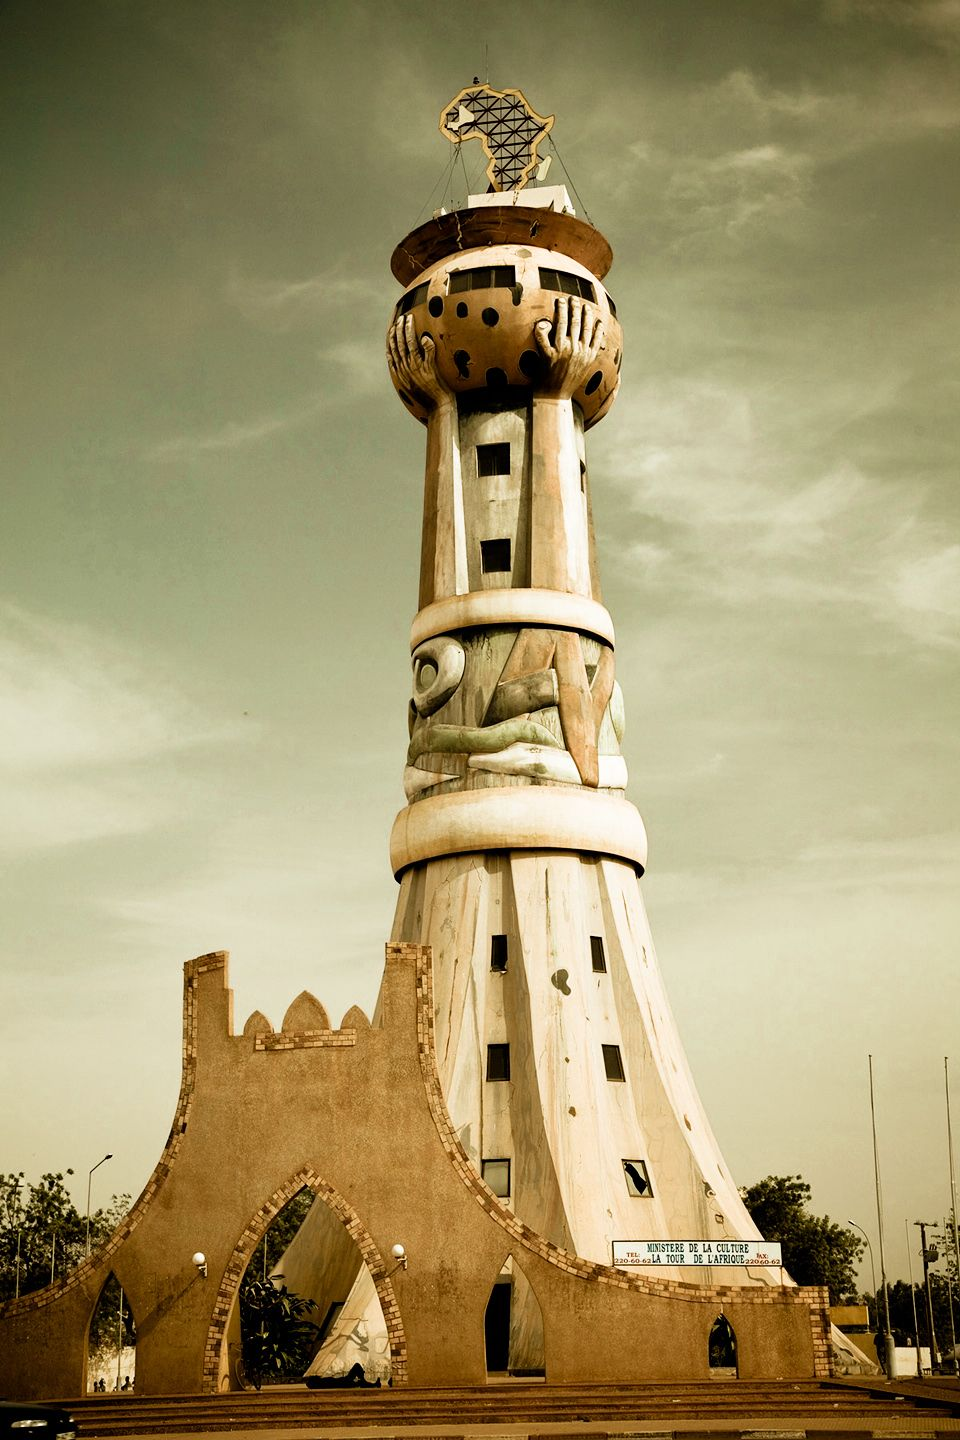 Tower In Mali West Africa African Travel West Africa Africa